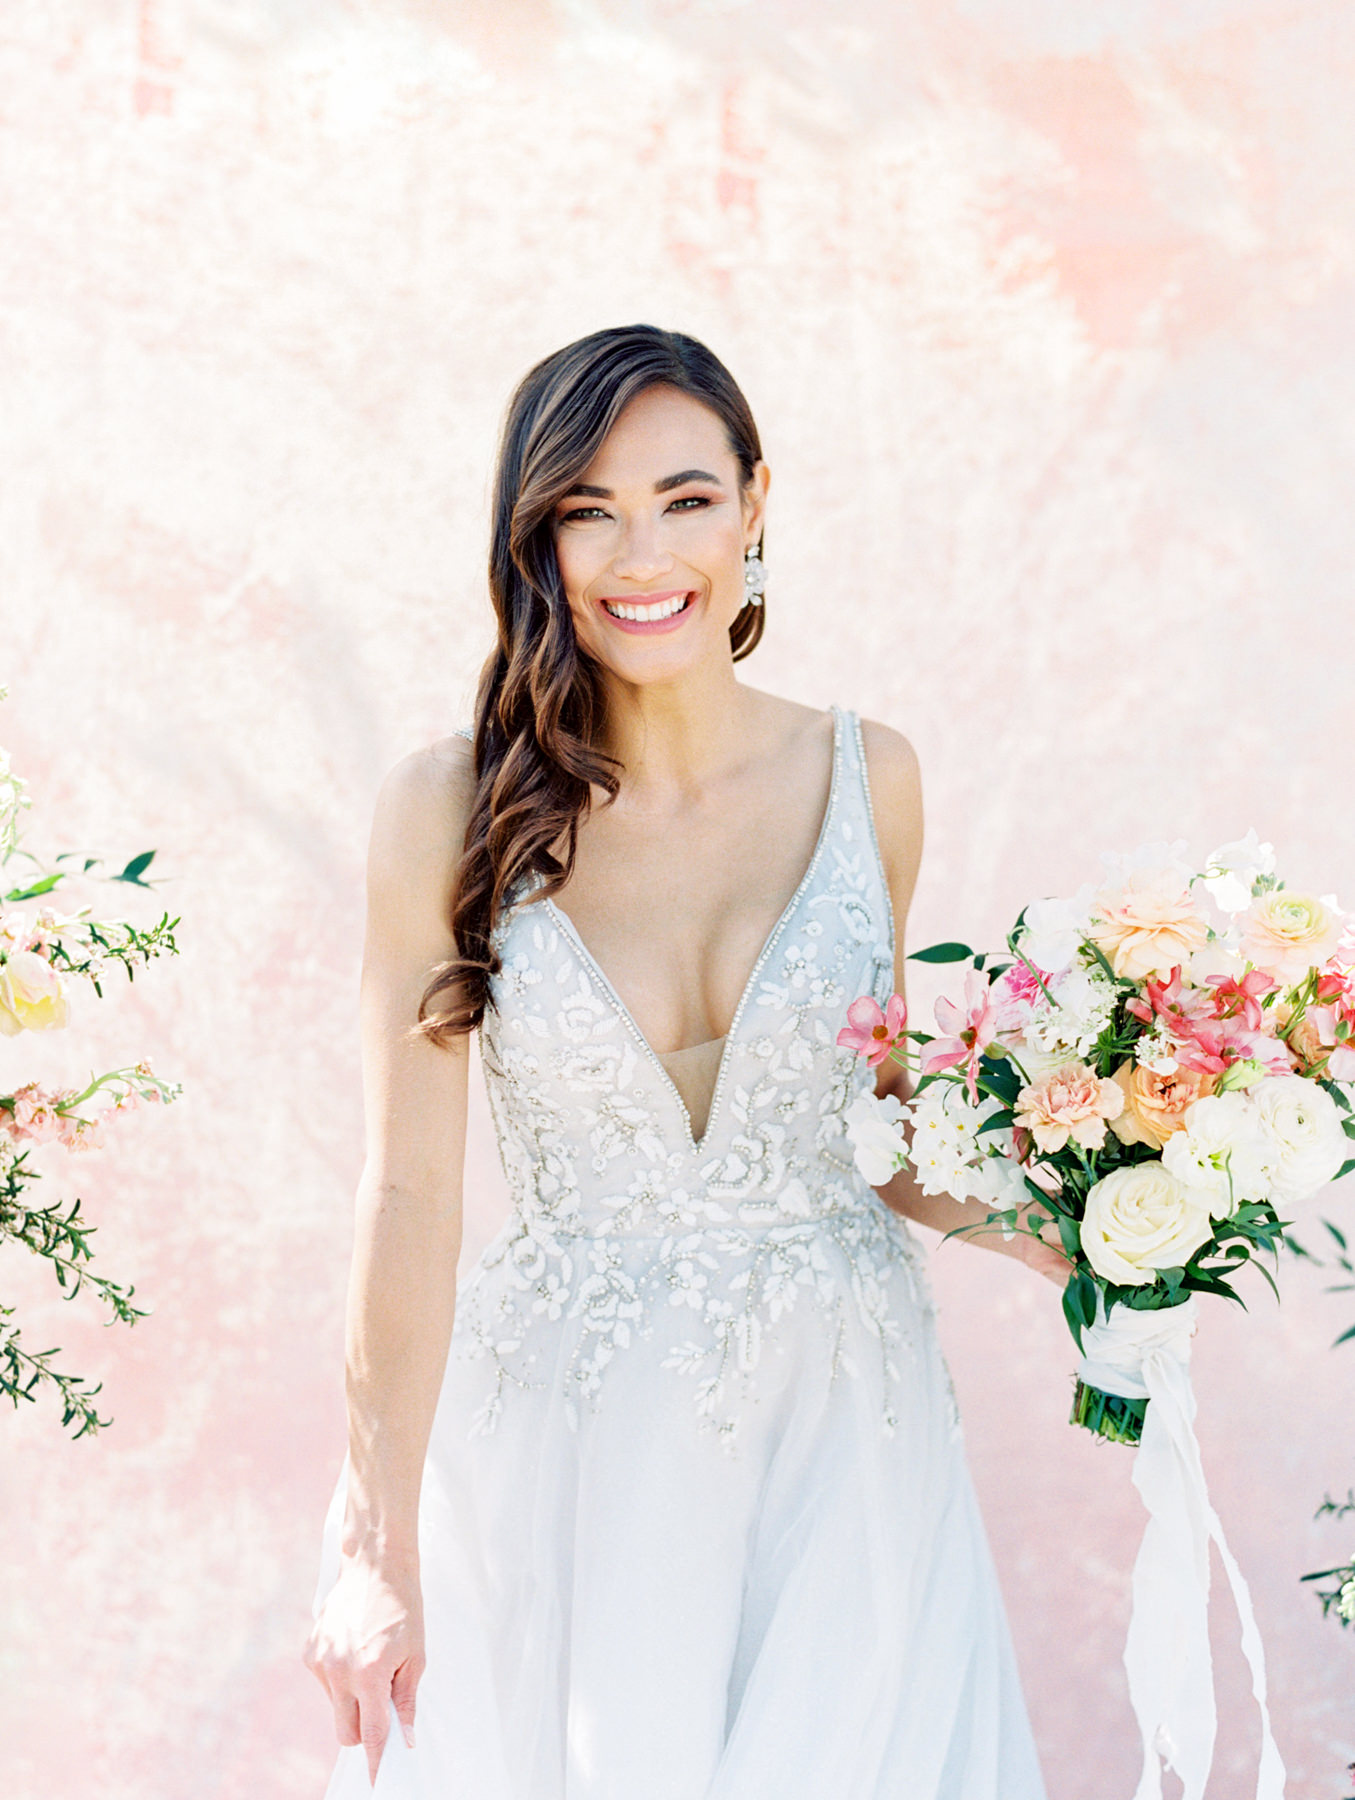 Bridal bouquet with ivory, pink, peach, carnations, roses, ranunculus, sweet peas, and greenery. Haiku beaded and embroidered A-line gown, plunging V-neckline with illusion net insert and side cut outs, low scoop back and rhinestone trim, full skirt with layered starlight sparkle tulle. Hayley Paige Lauren gown from The White Flower. Cavin Elizabeth Photography - film photographer in San Diego.